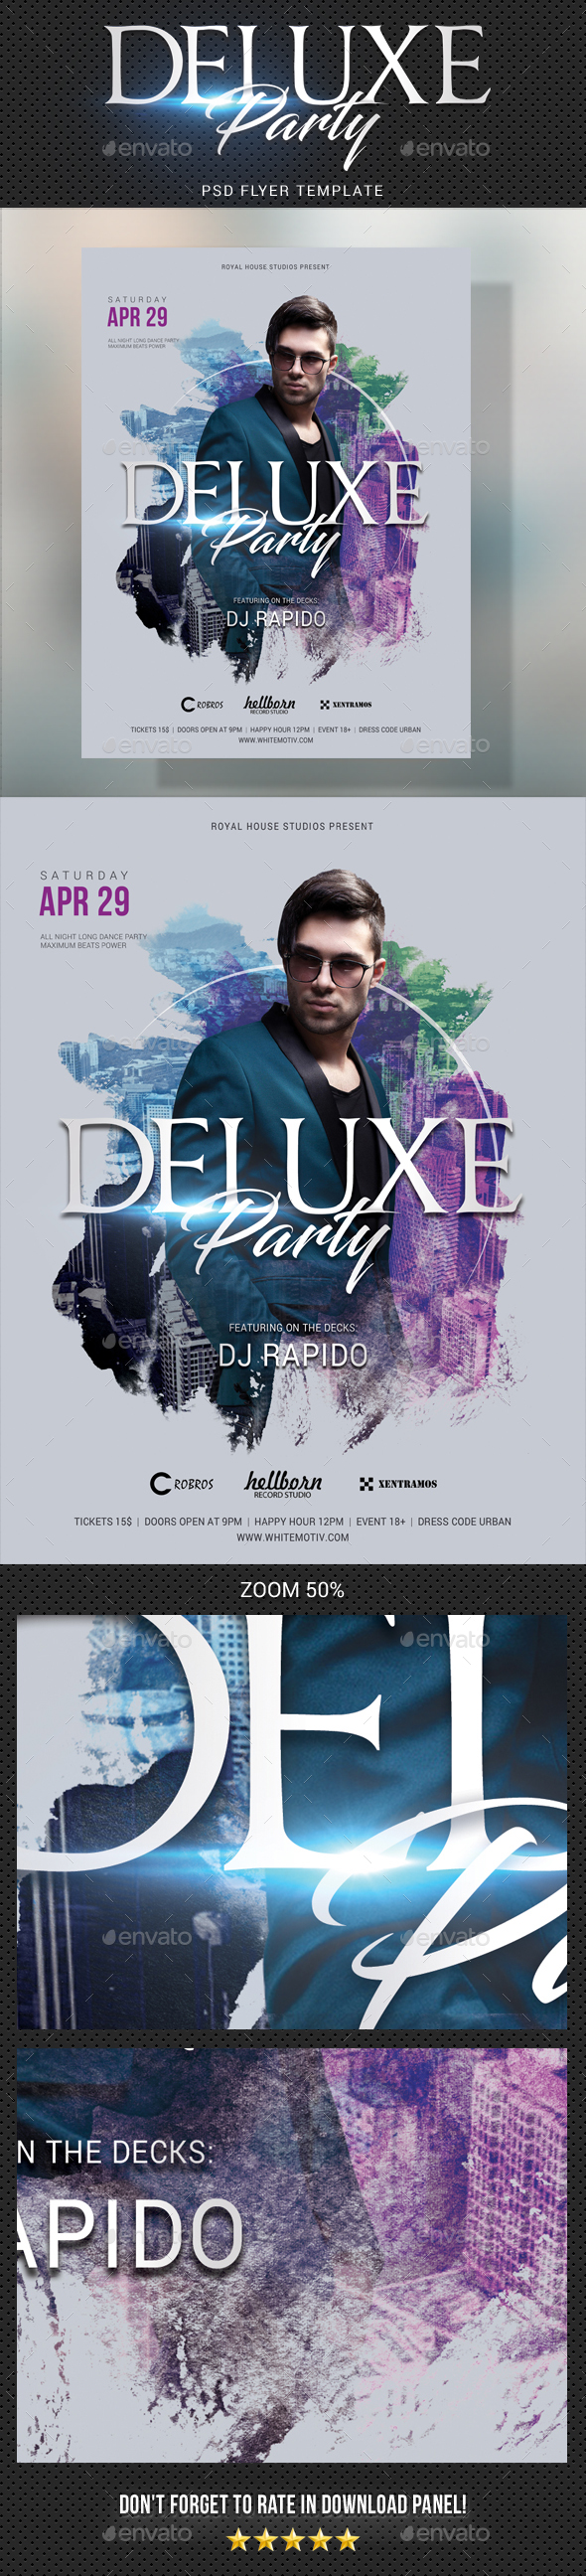 Deluxe Dj Party Flyer - Clubs & Parties Events